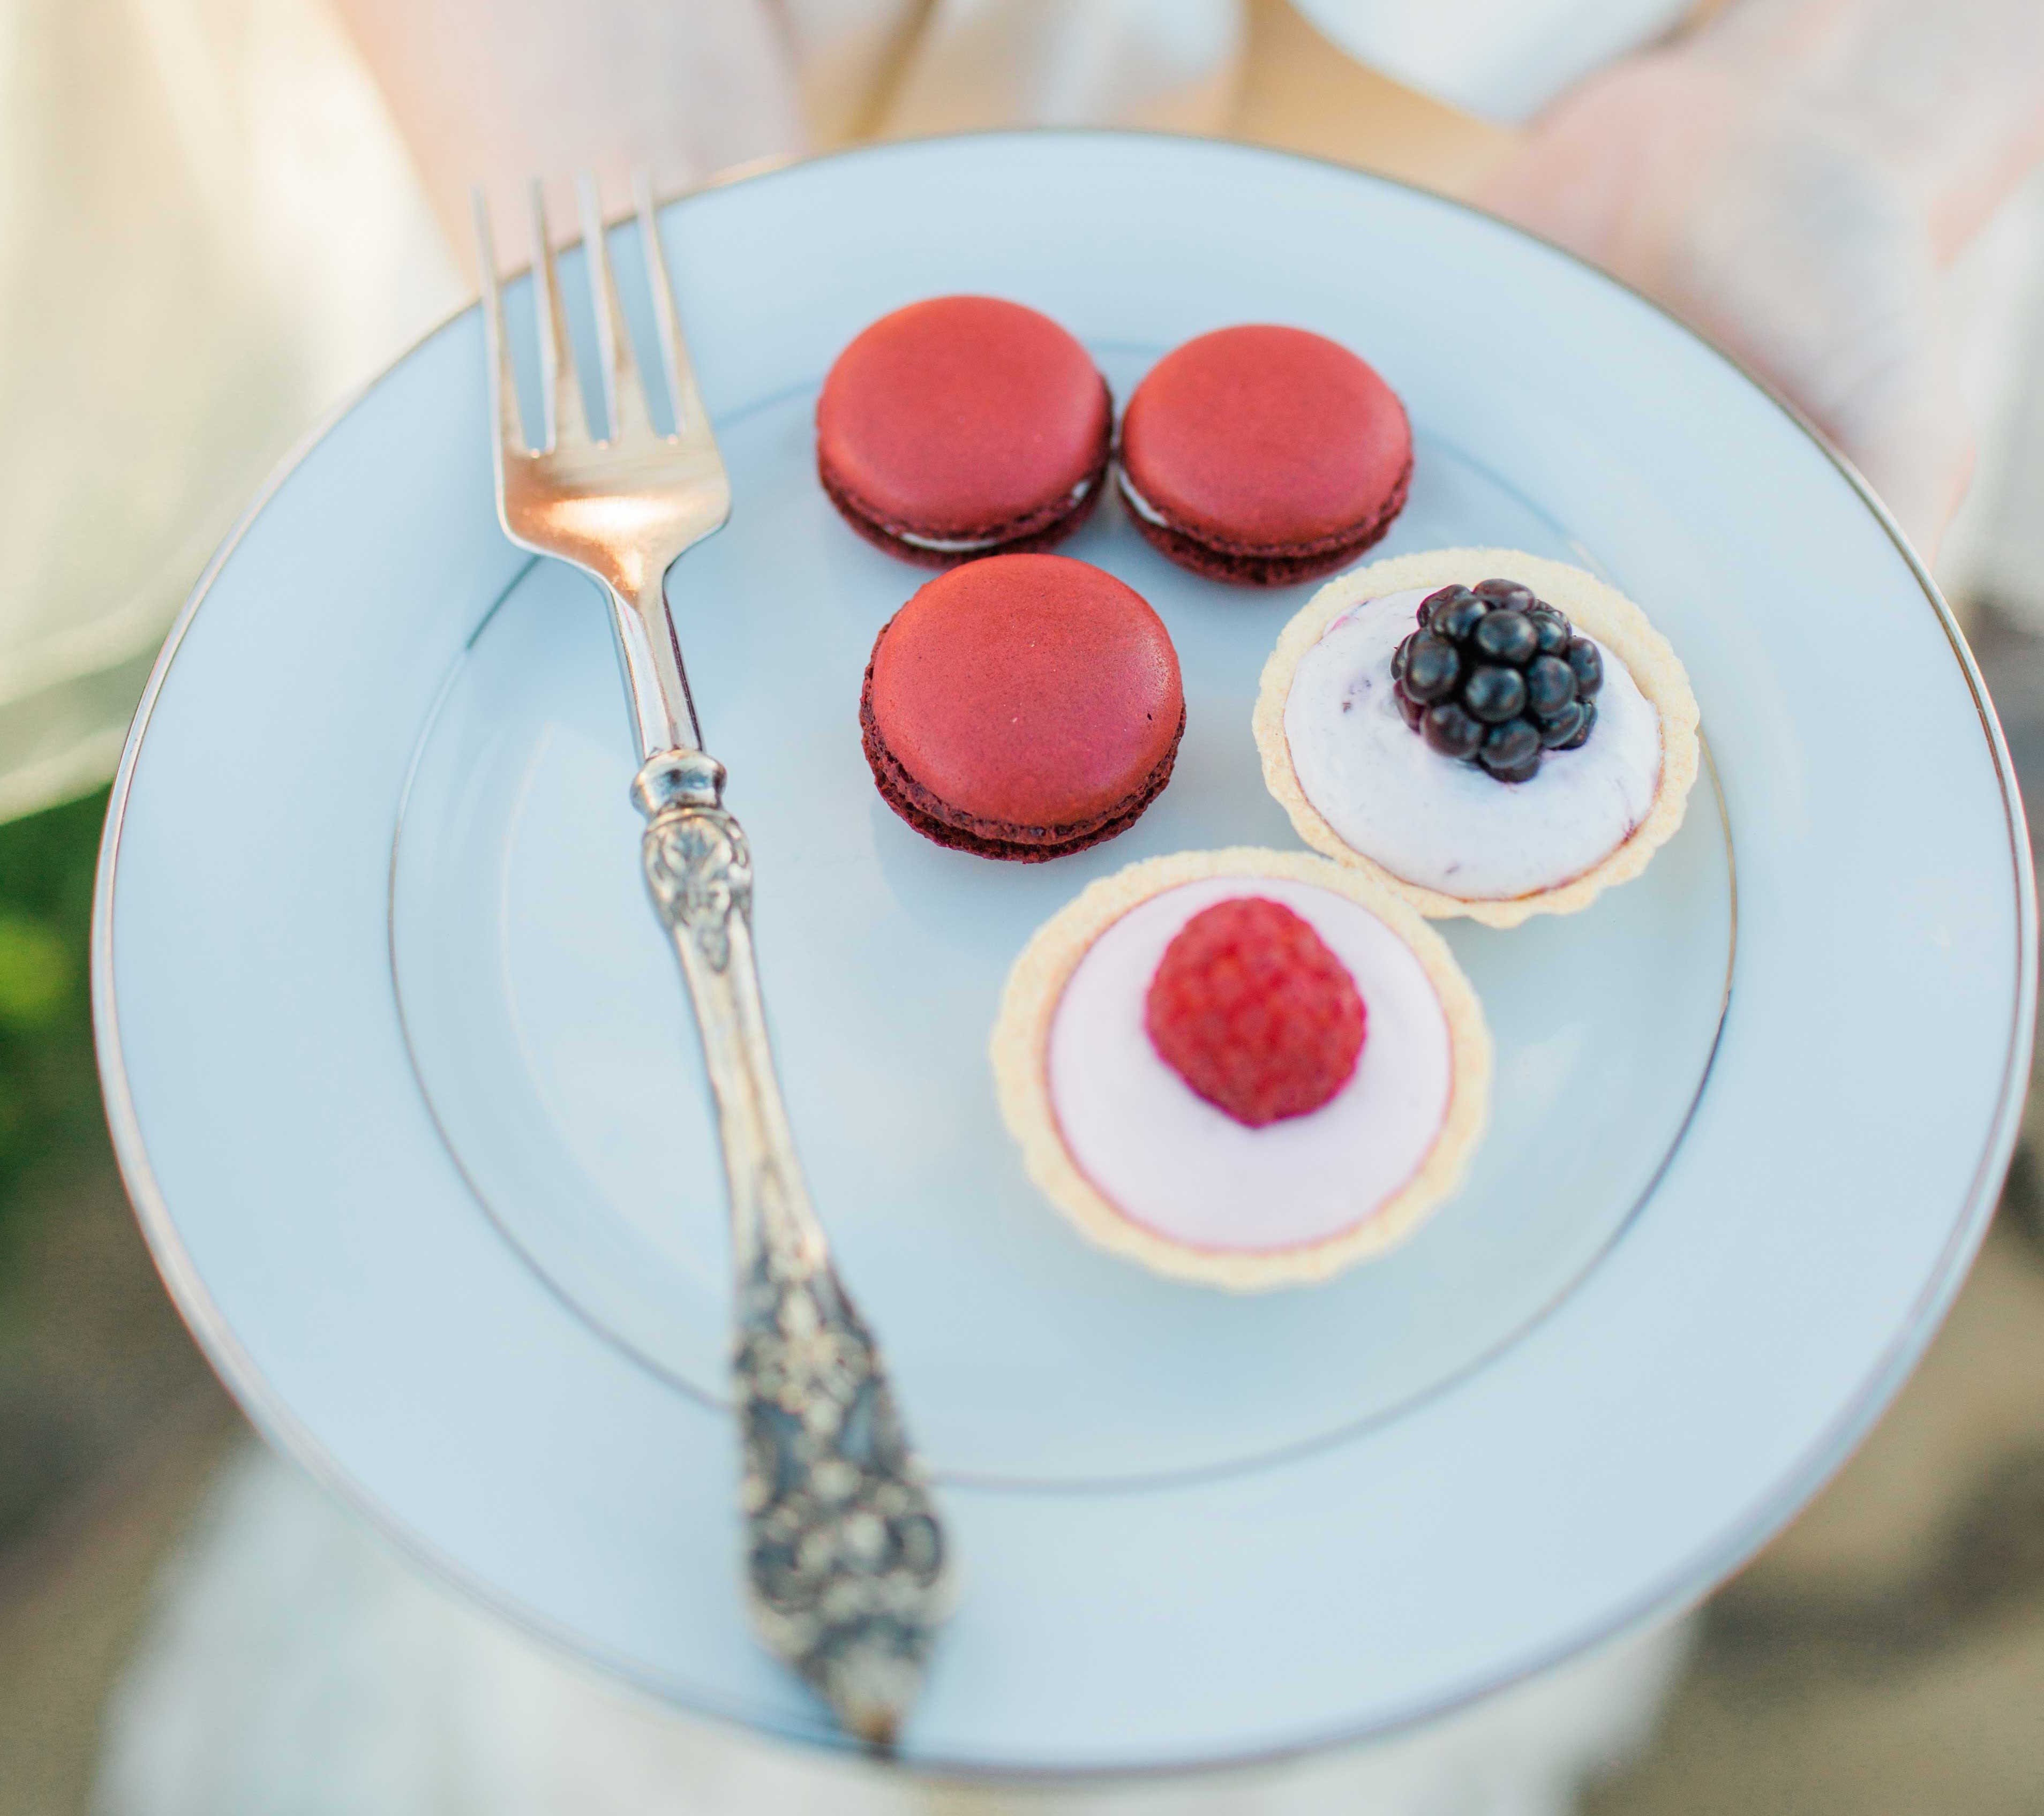 Red French macaron cookies and fruit tarts